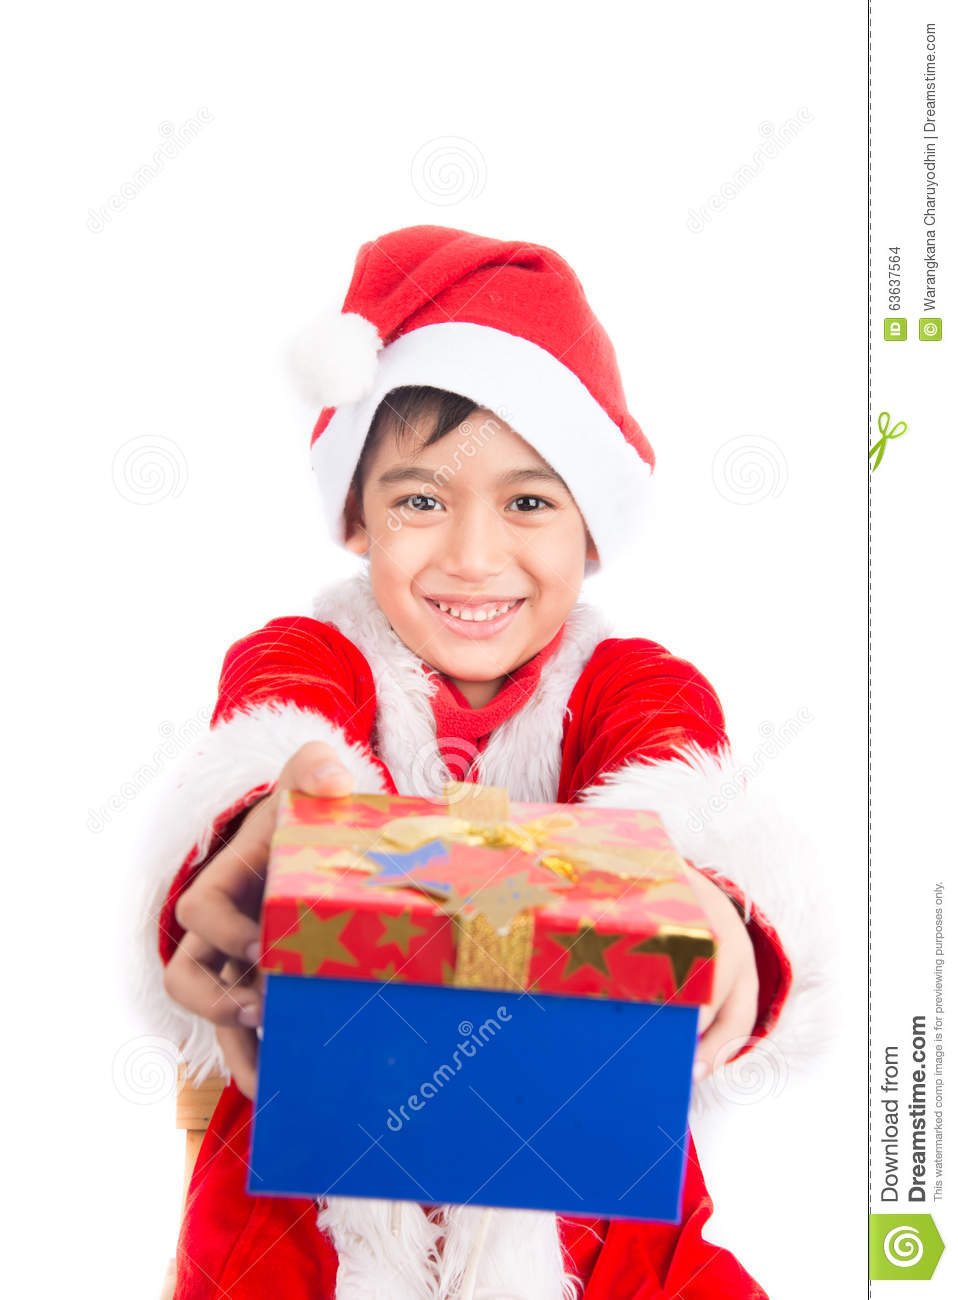 Giving gifts at christmas time